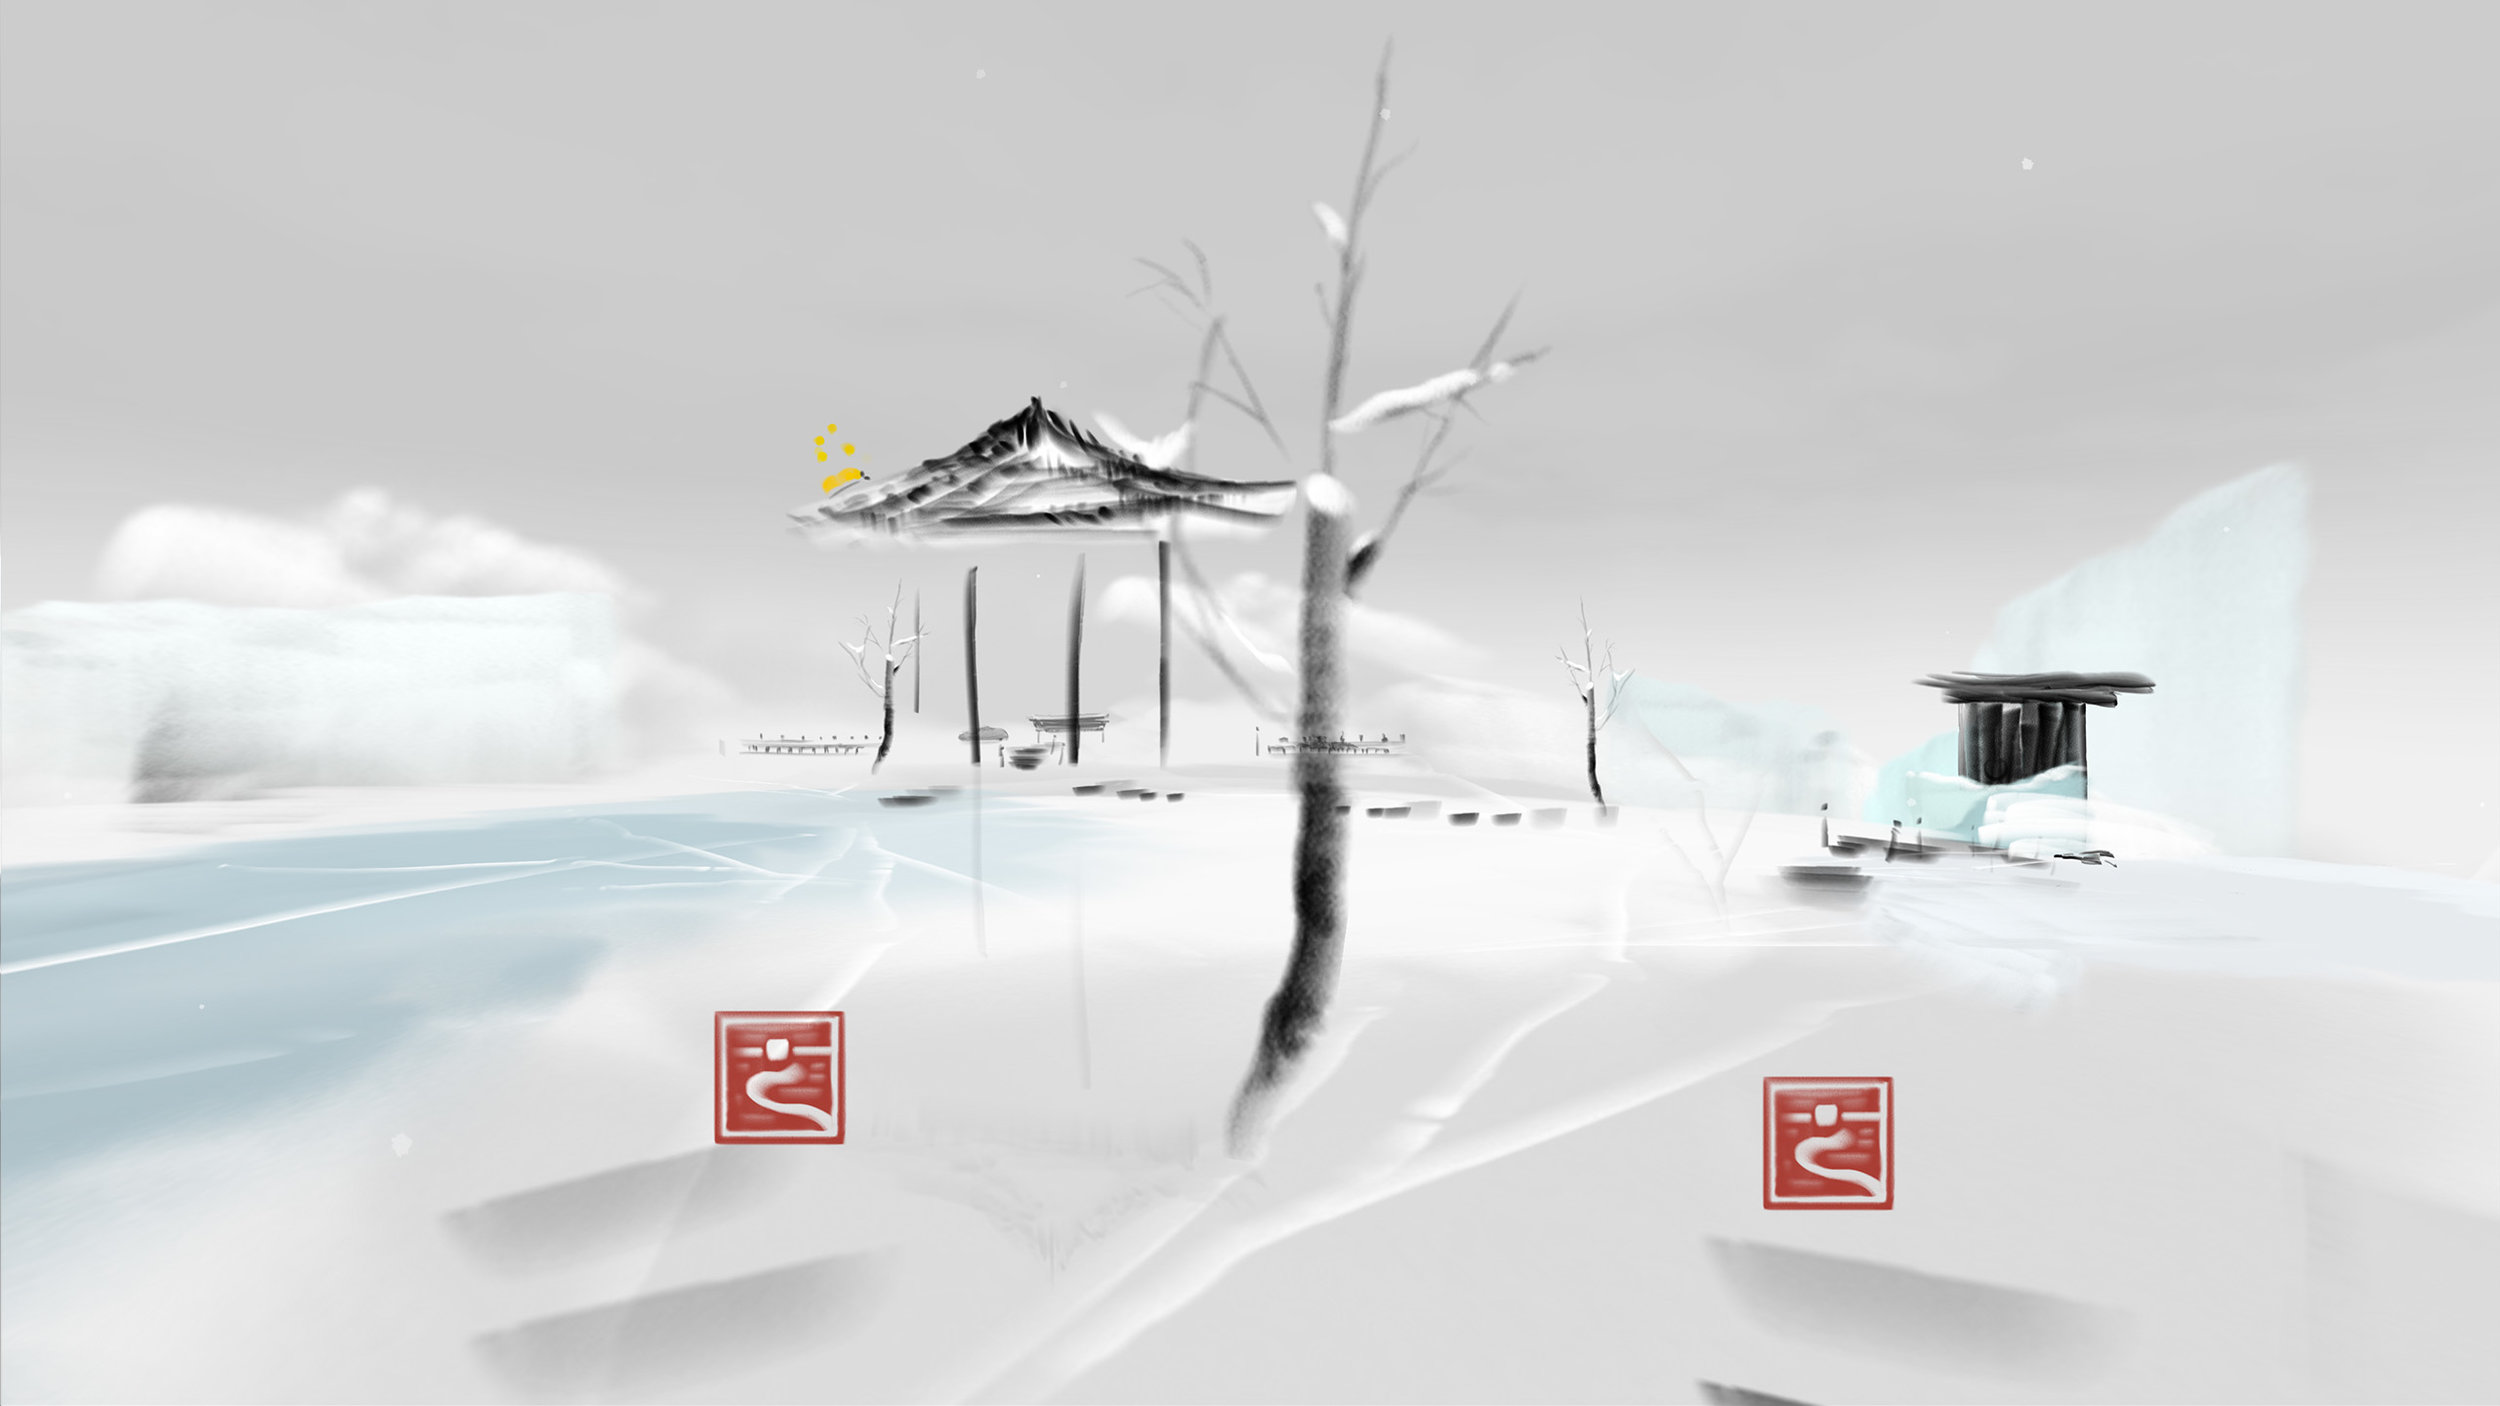 Mirages of Winter - The Lake - Screenshot 1440p.jpg